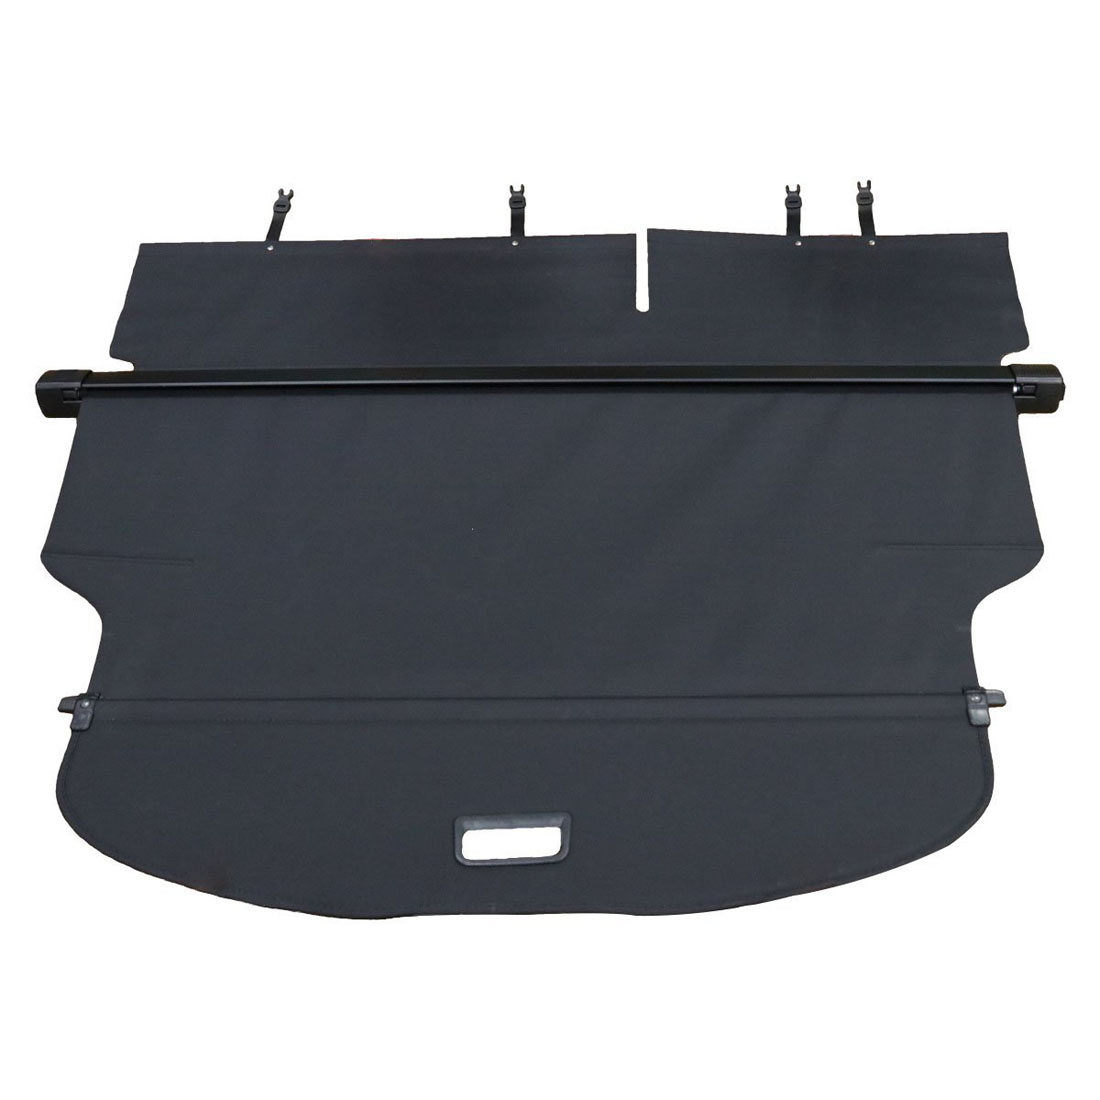 retractable rear truck cargo cover tray shade shield for jeep cherokee 2014 2017 9290202368416. Black Bedroom Furniture Sets. Home Design Ideas